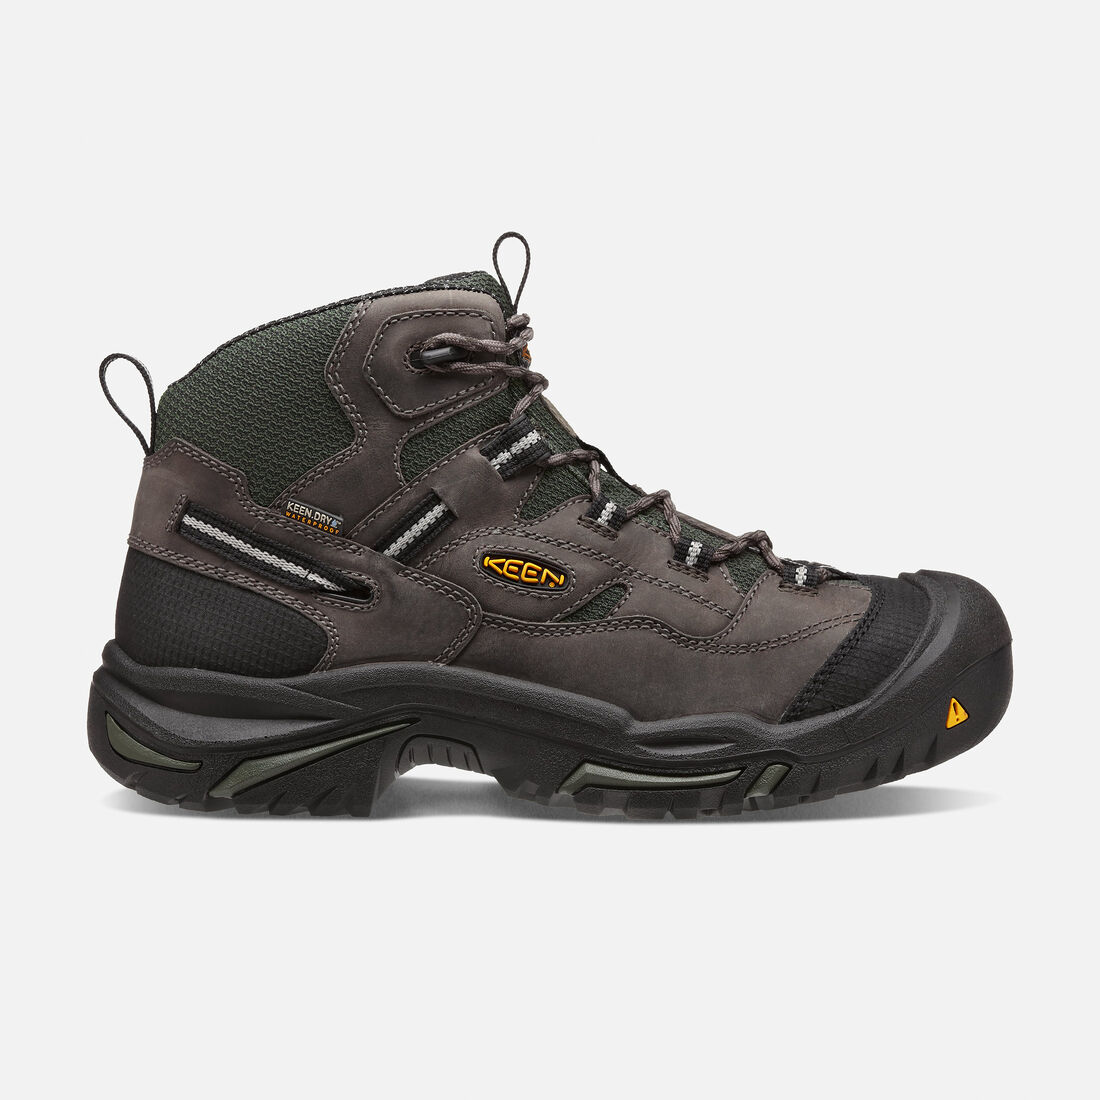 Men's Braddock Waterproof Mid (Steel Toe) in Gargoyle/Forest  Night - large view.